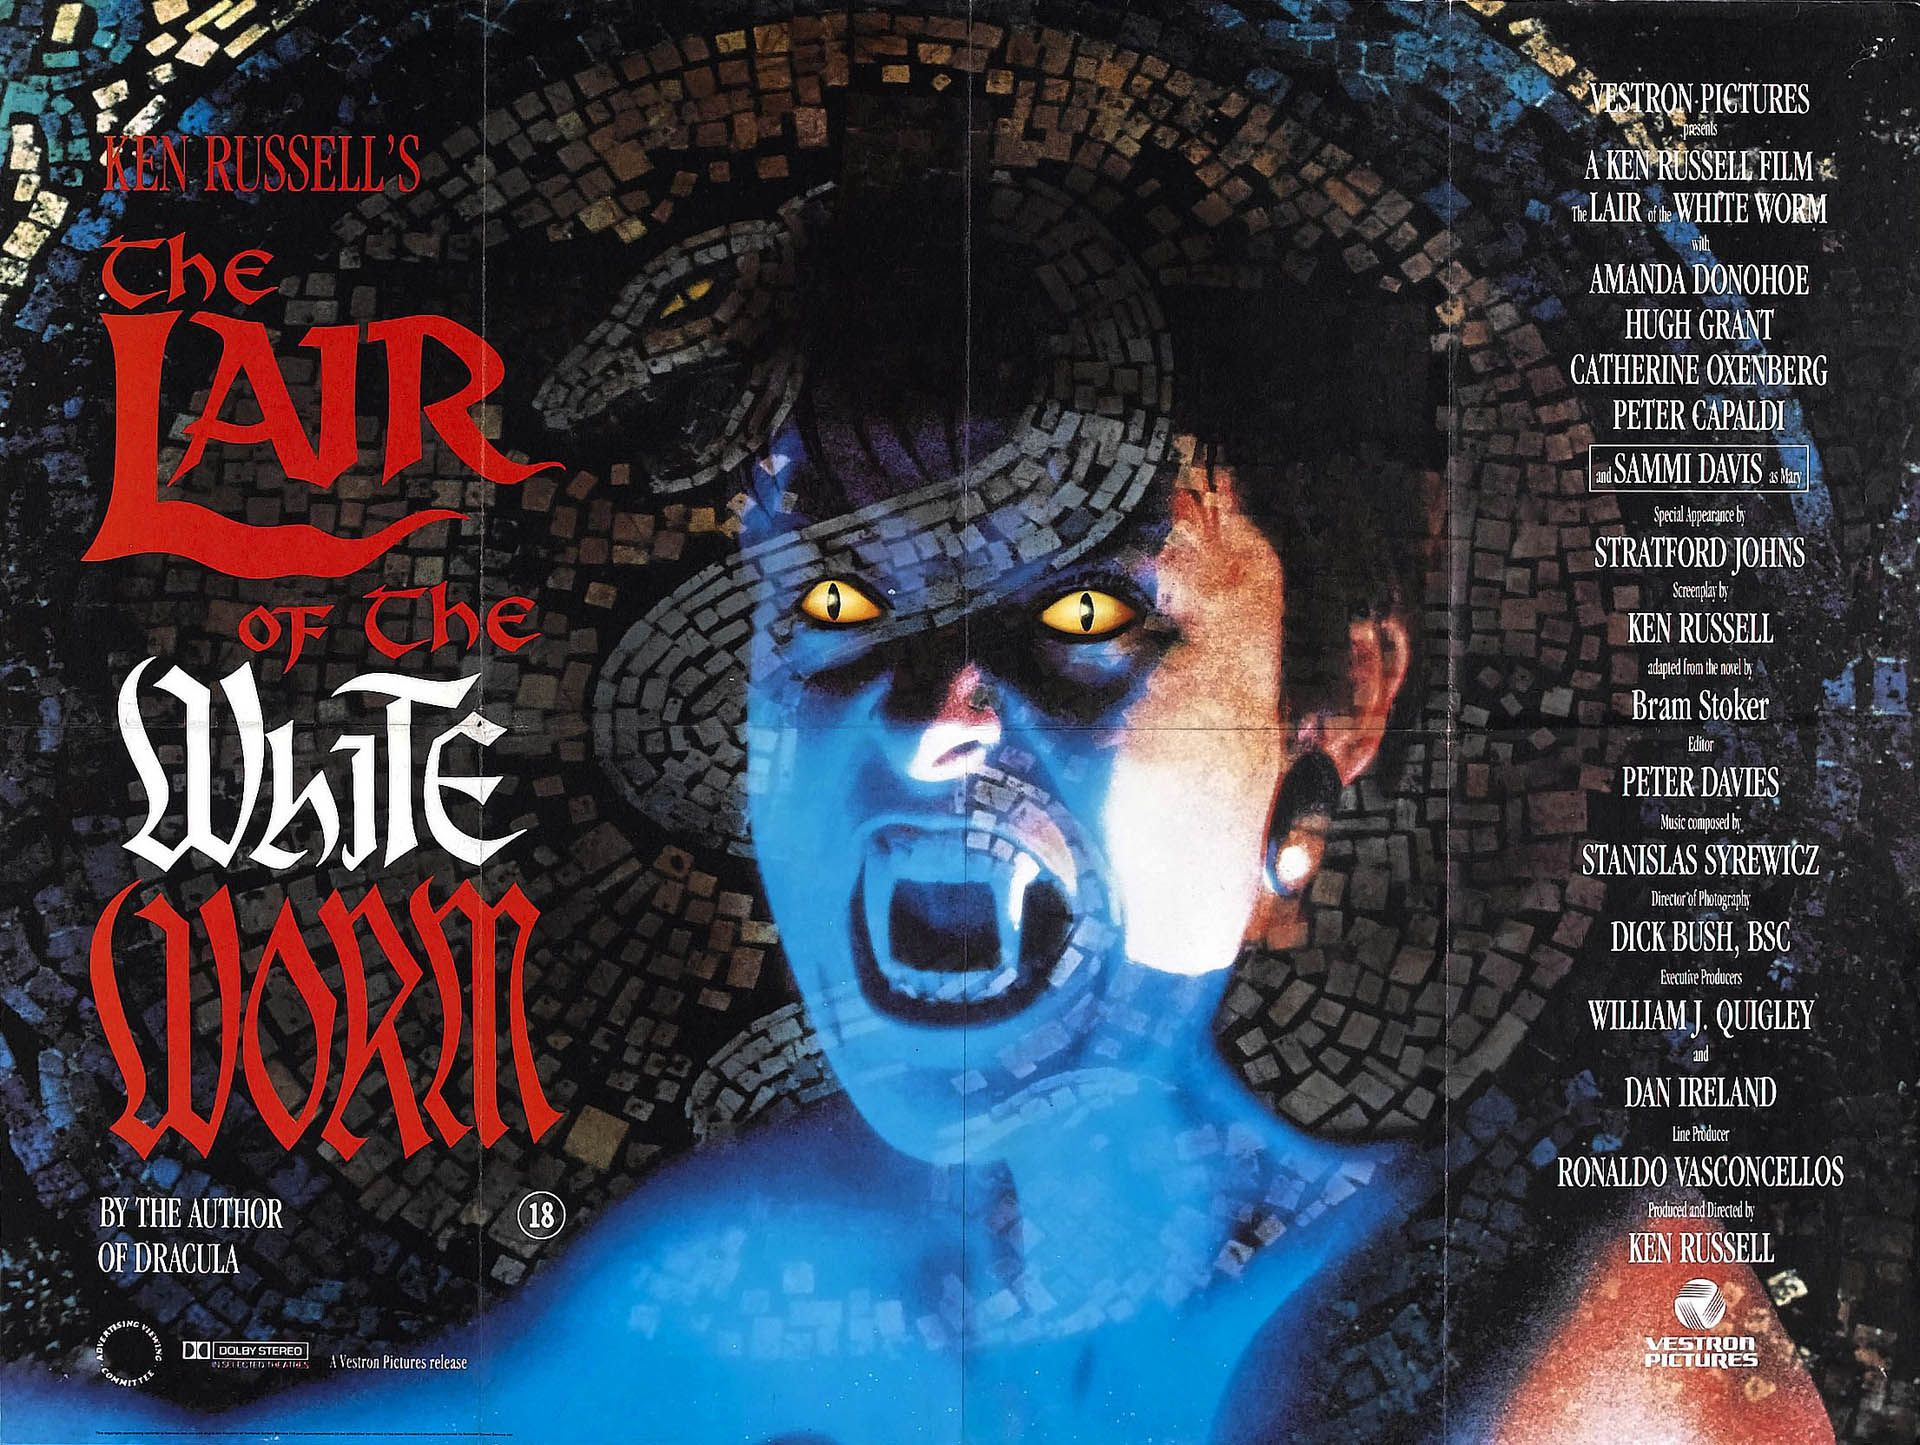 1988 Movie Posters: The Lair Of The White Worm (1988)